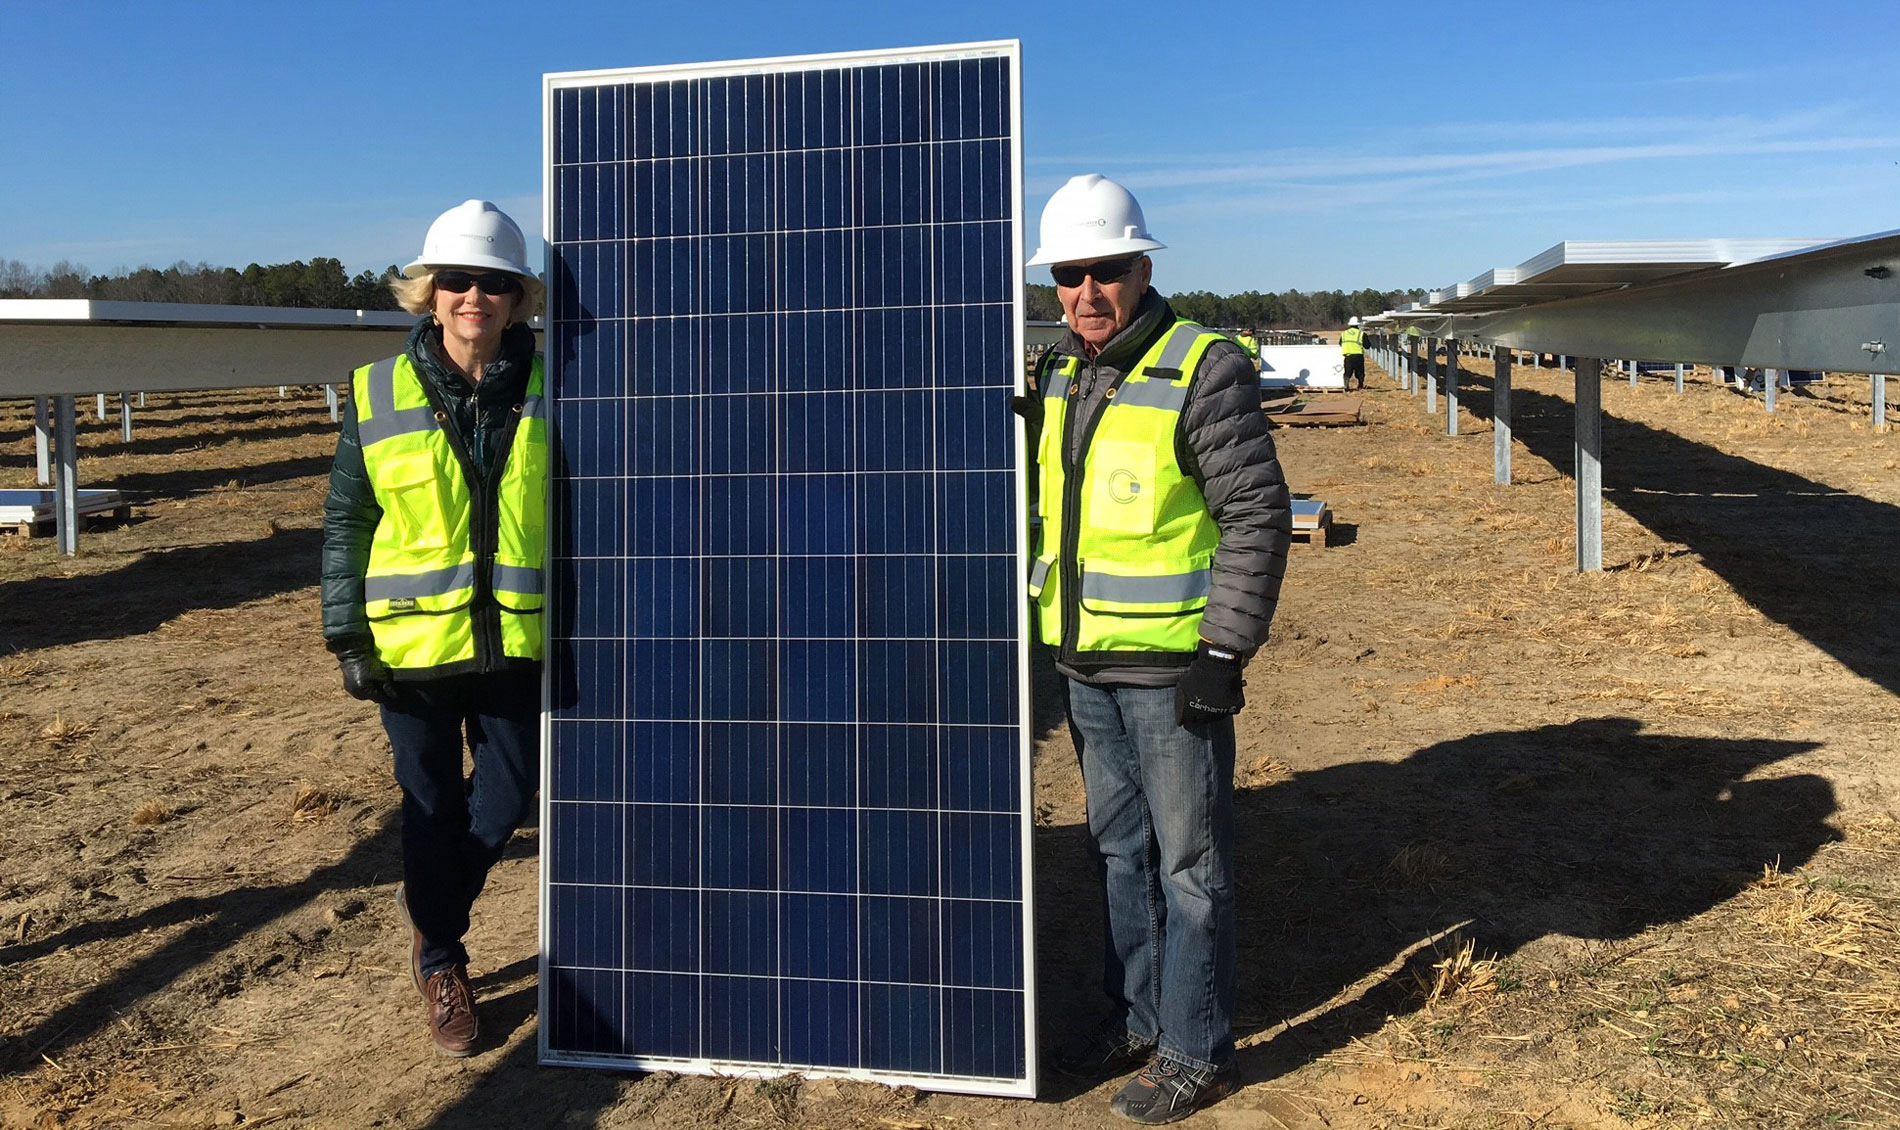 Gaston-Solar-Farm-Landowner-I.jpg